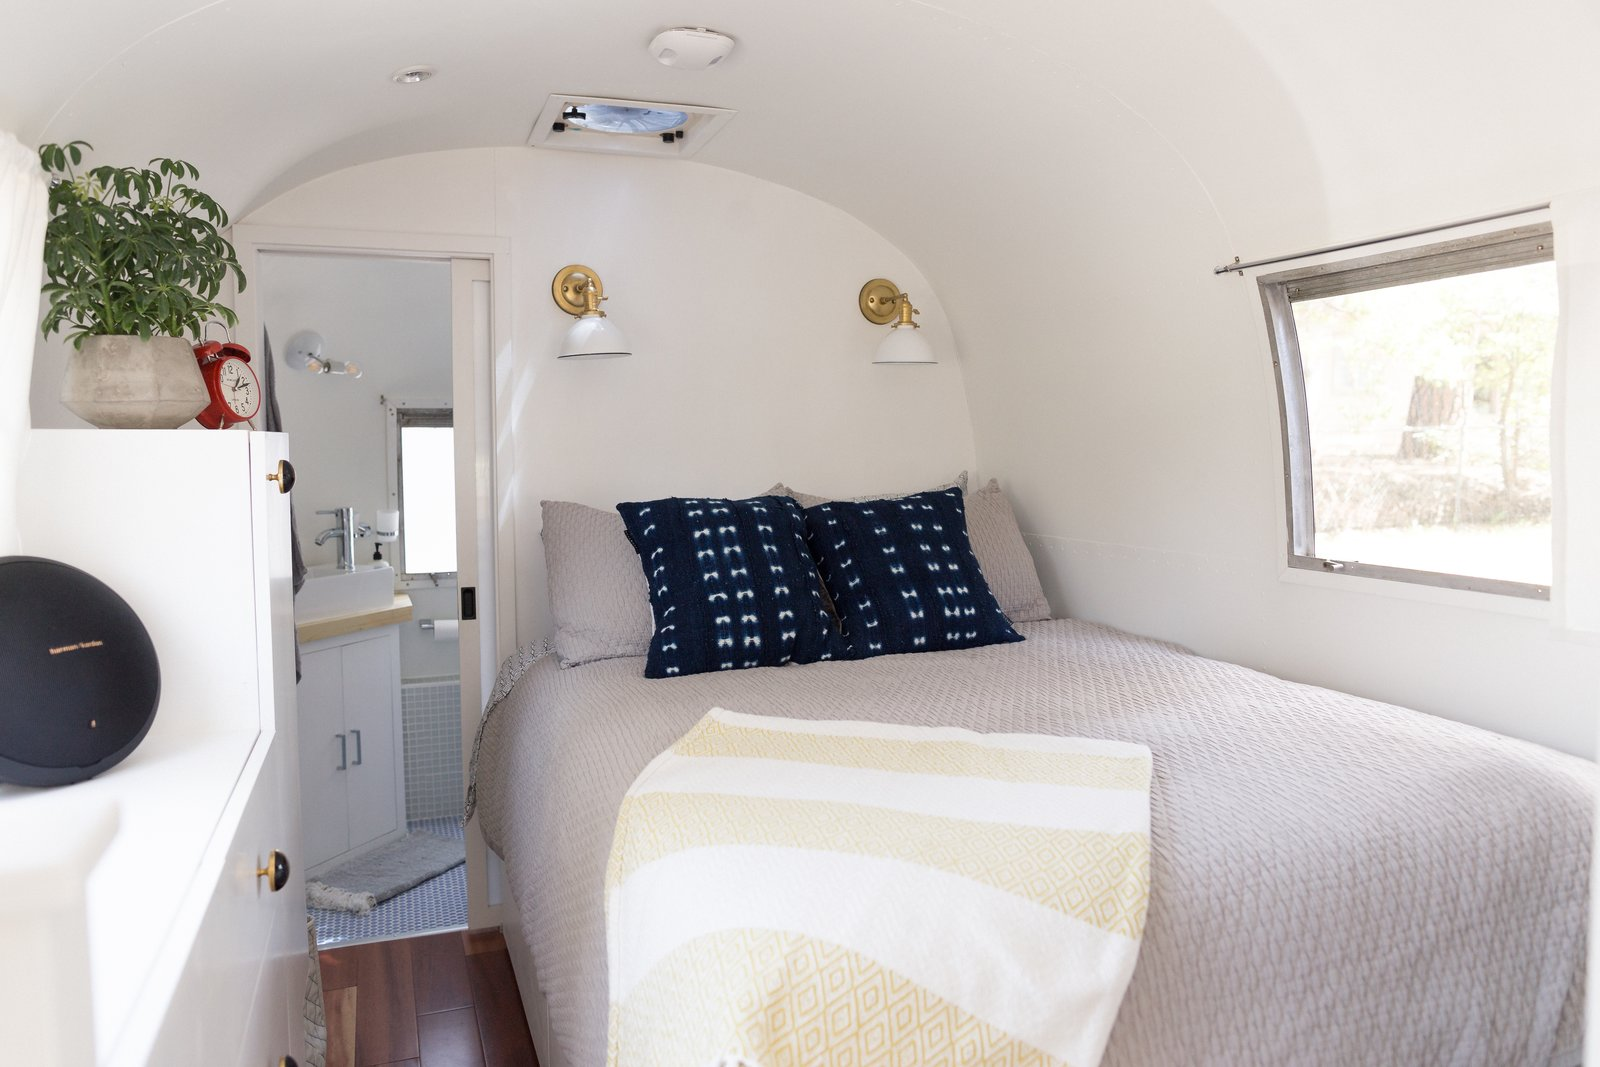 Bedroom, Wall Lighting, Bed, Dresser, and Medium Hardwood Floor  Photo 13 of 25 in See How an Oregon Couple Renovated Their 1966 Airstream